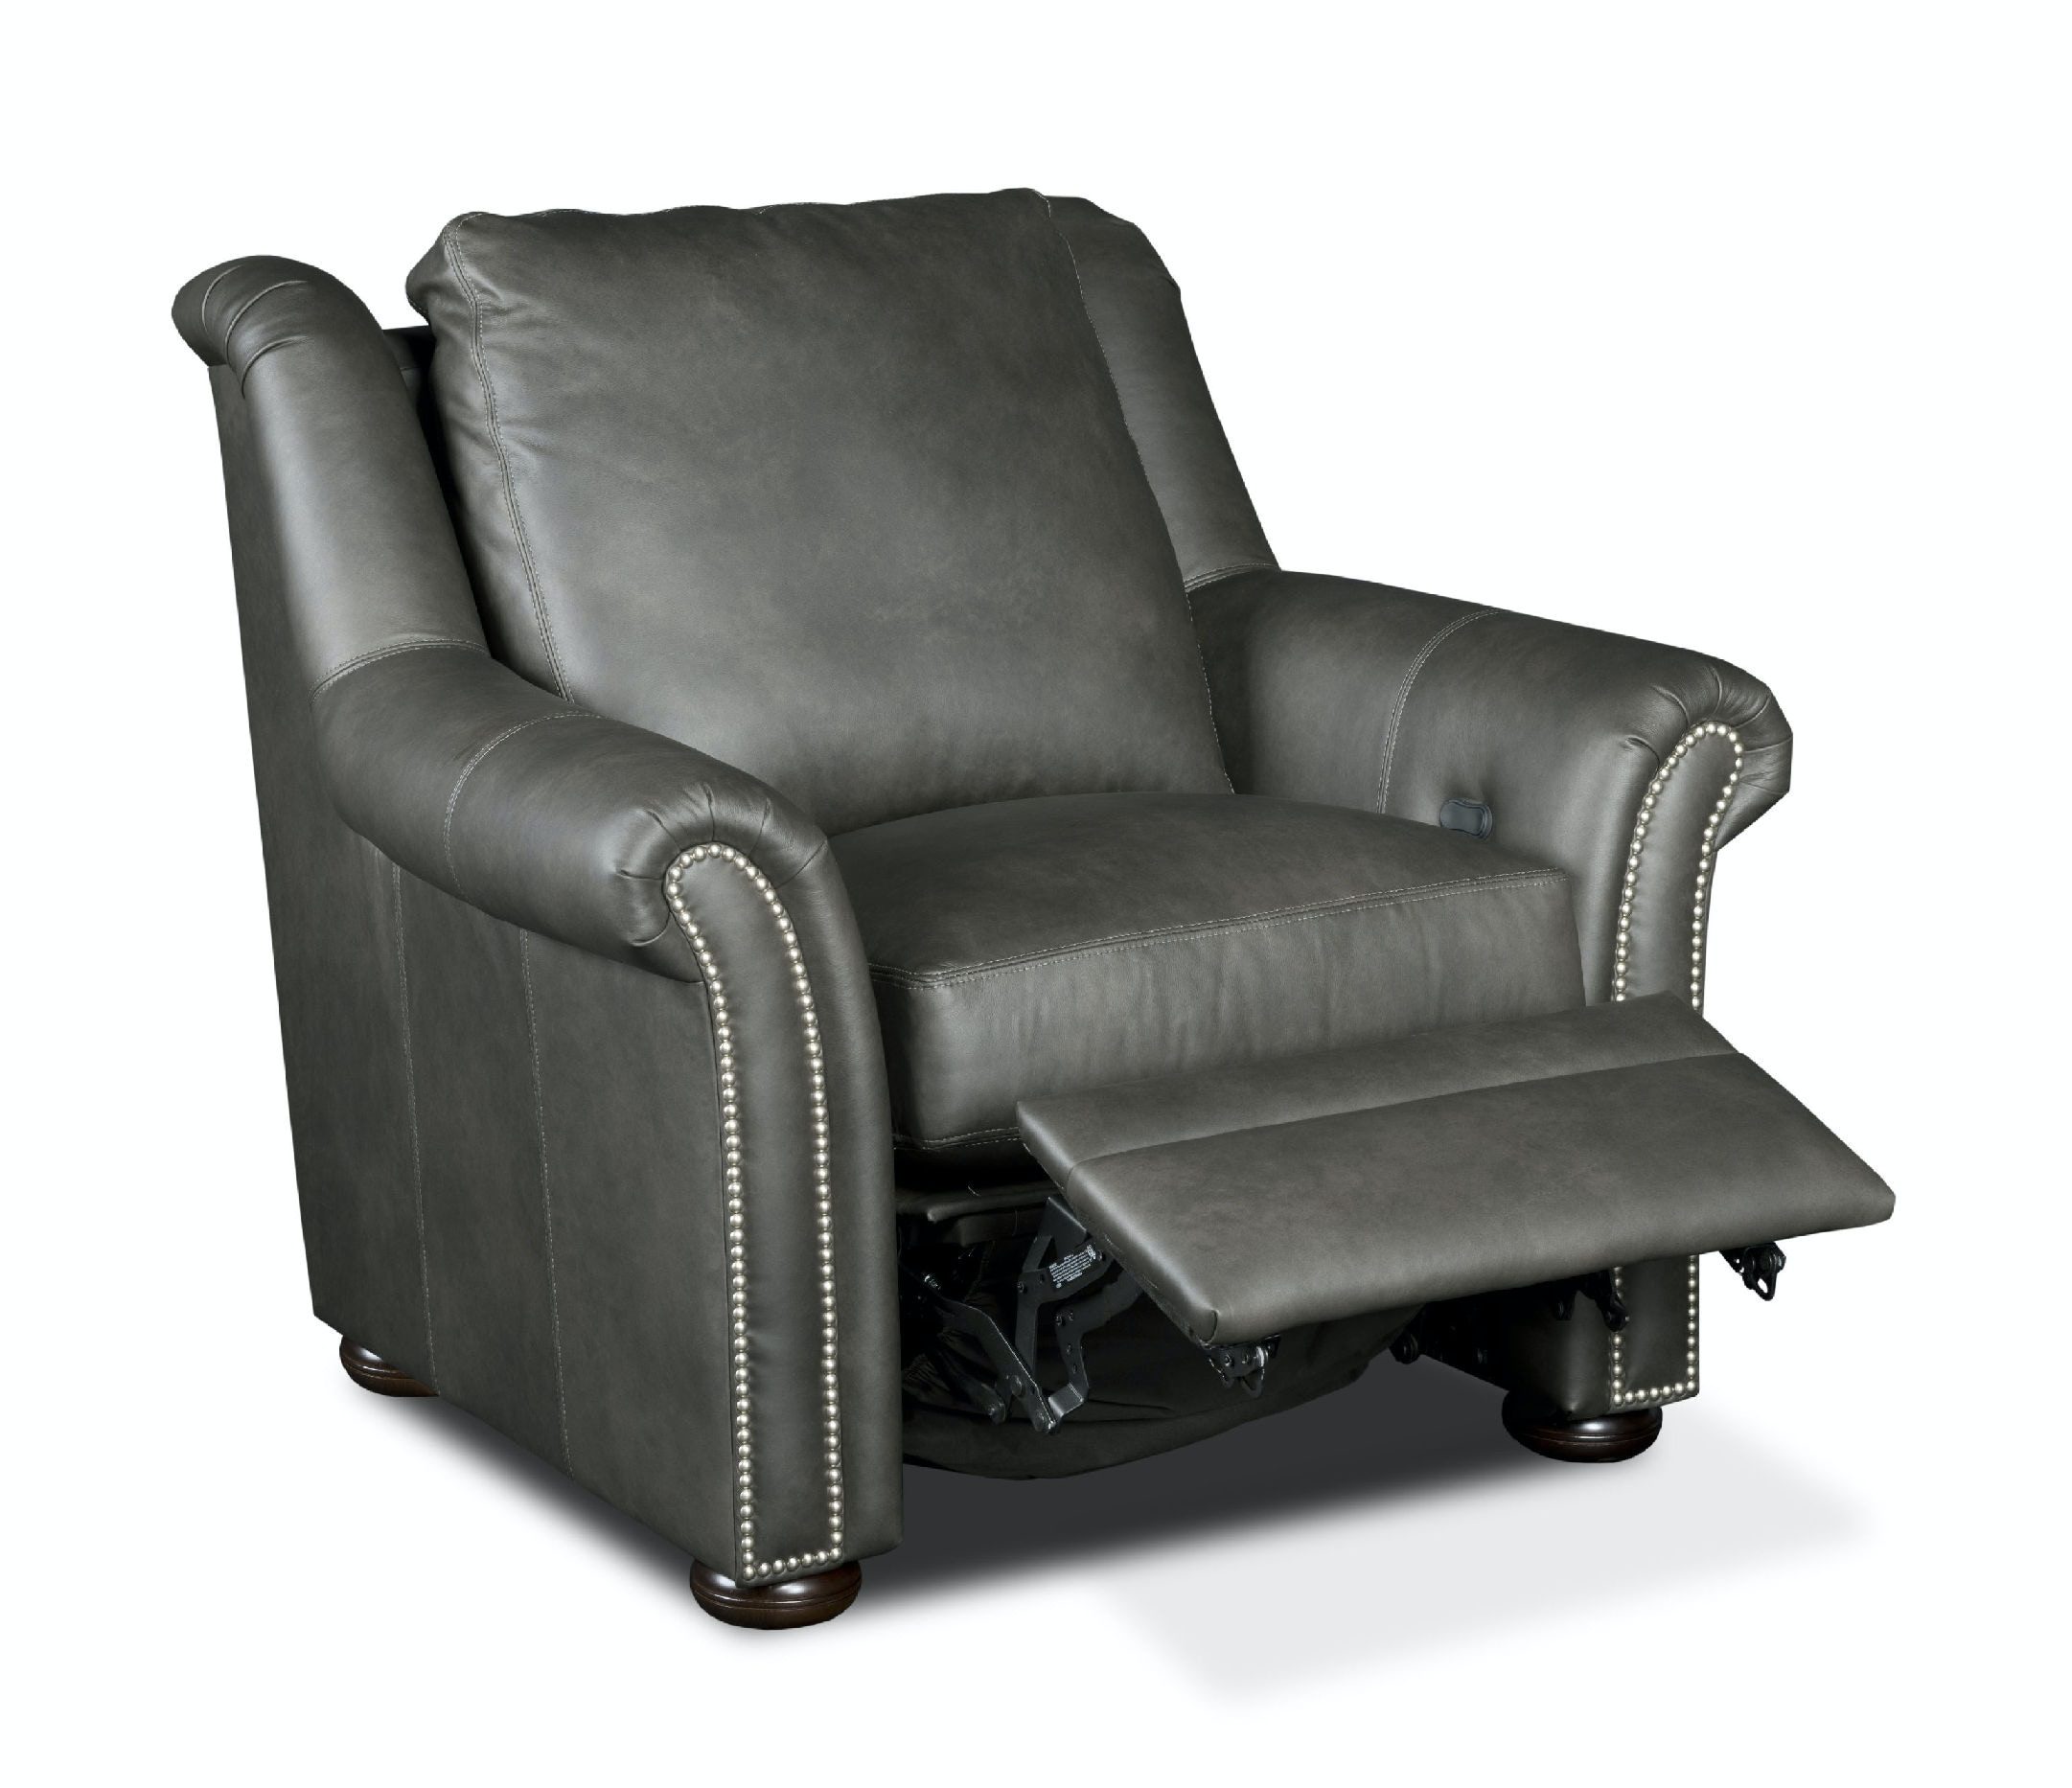 Bradington-Young Leather Power Reclining Chair 916-35  sc 1 st  Simonu0027s Furniture & Bradington-Young Living Room Leather Power Reclining Chair 916-35 ... islam-shia.org